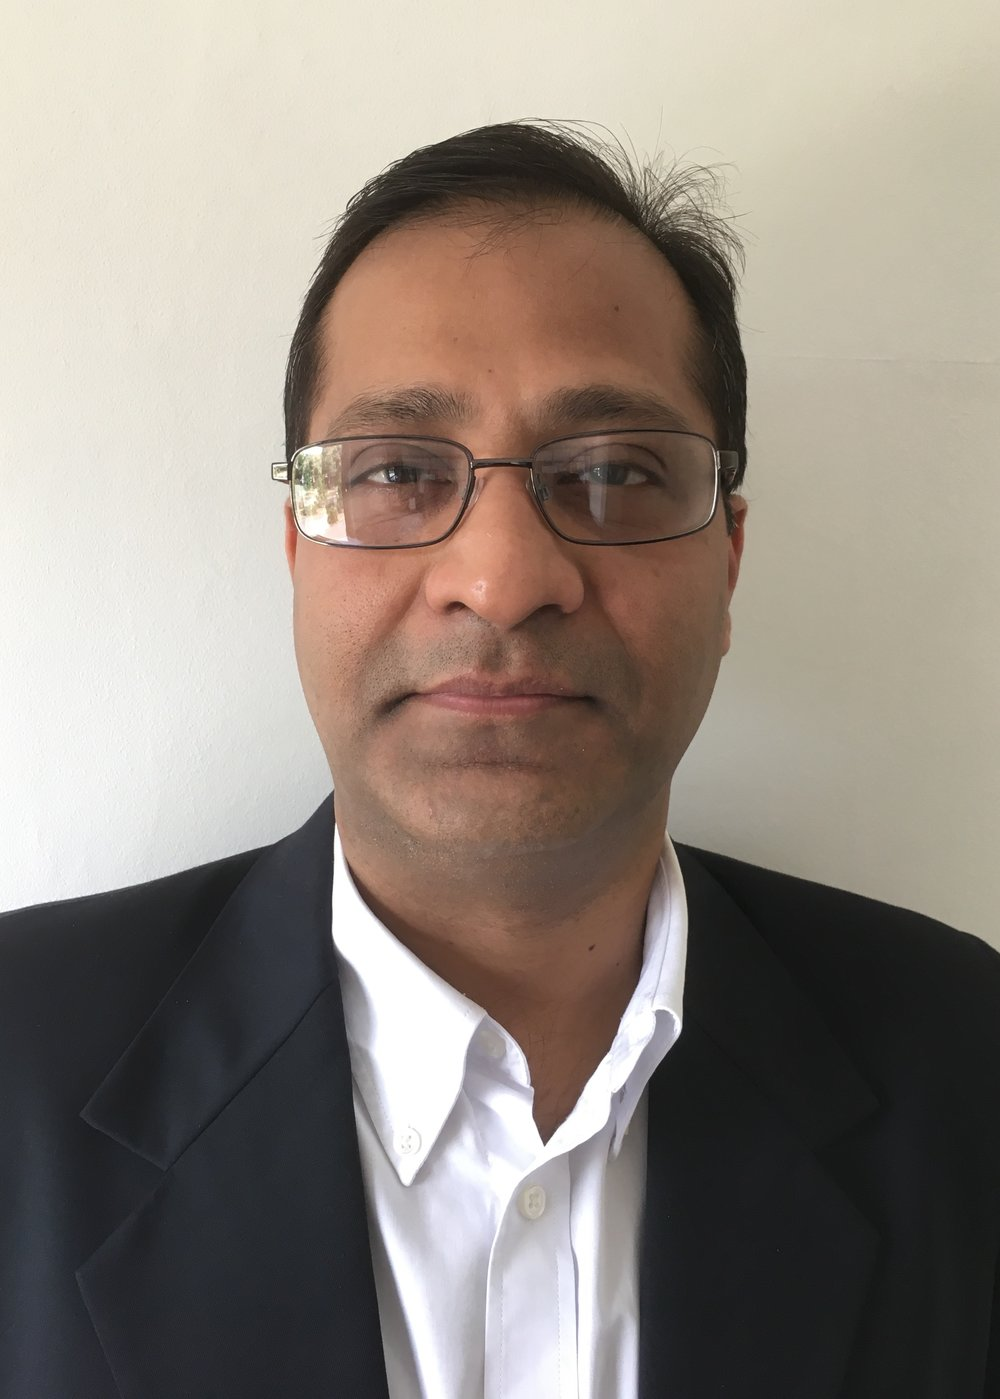 Vikas Poddar - Finance Controller at Vodafone Group